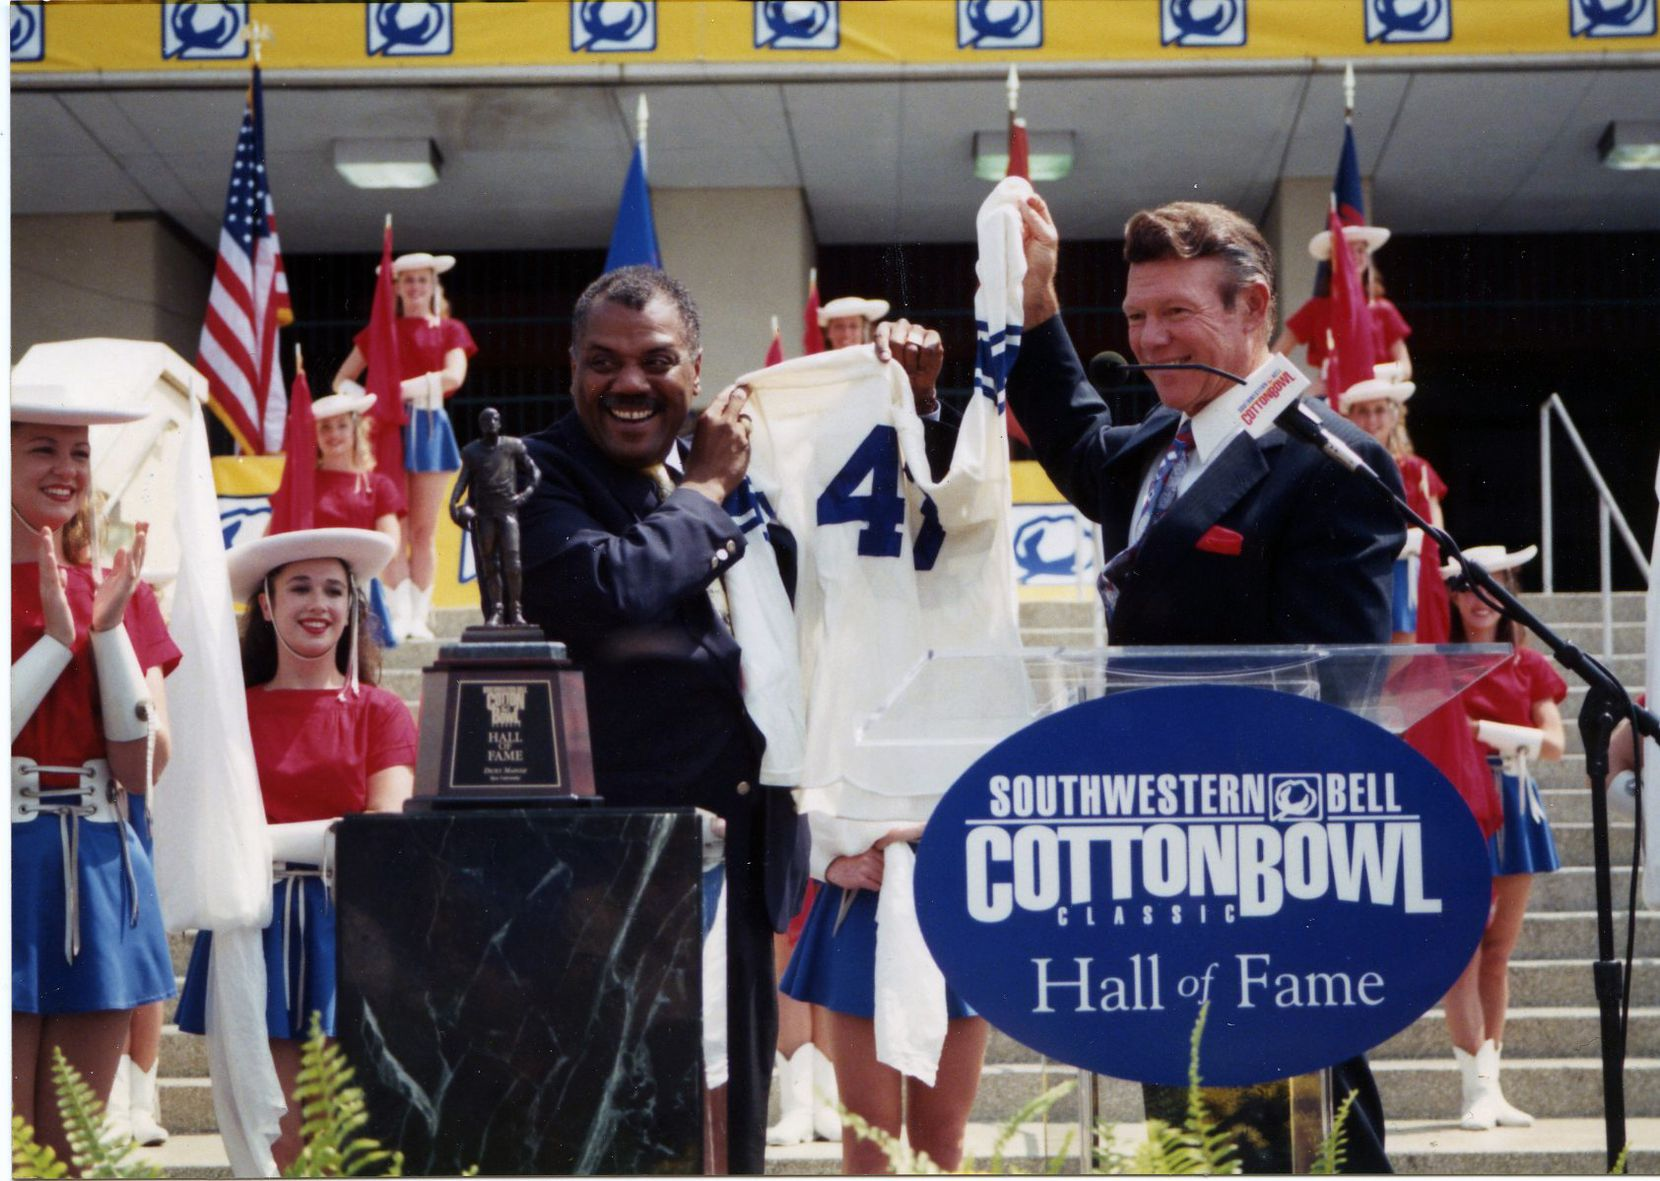 Two-time Cotton Bowl Chairman Fred McClure at the 1998 Cotton Bowl Hall of Fame Induction Ceremony with Rice running back Dicky Maegle. The Classic's internship program was recently named in honor of McClure.